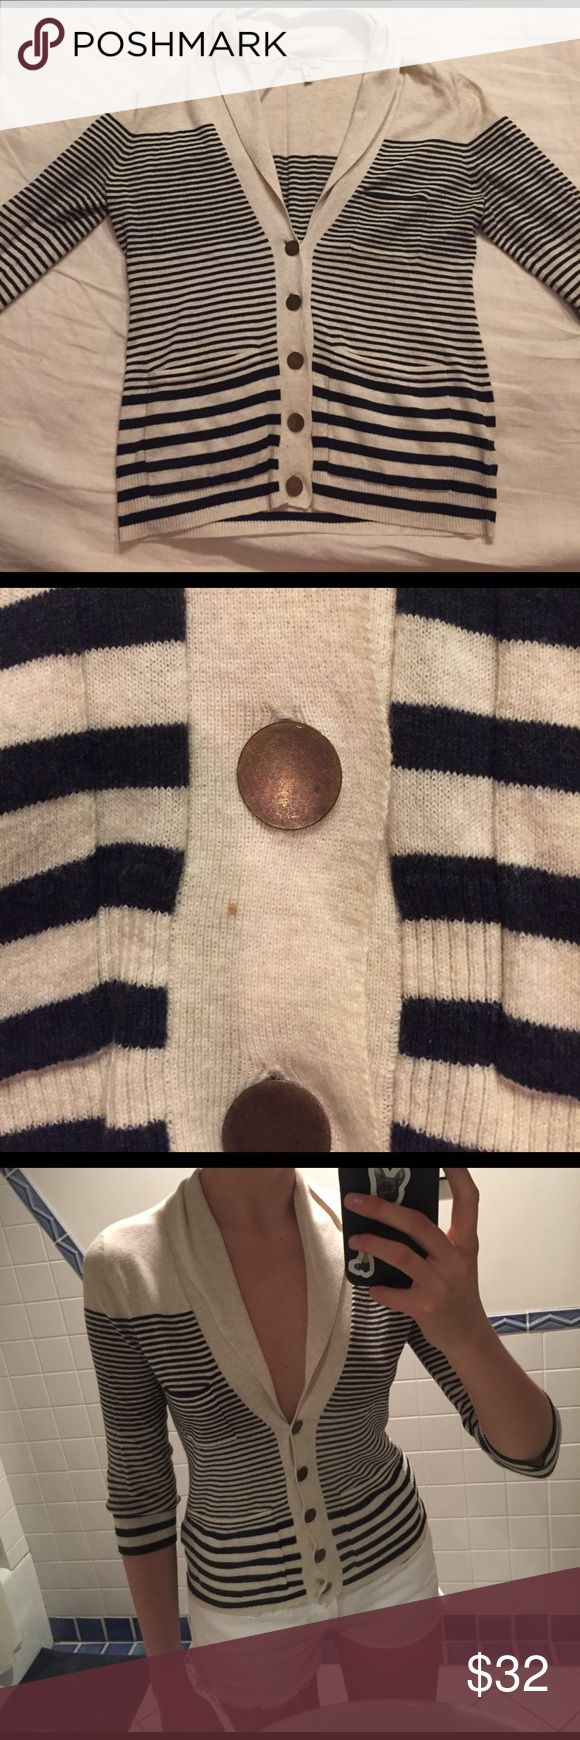 Joie Chic Striped Navy Nautical Cardigan Small S Super cute and very soft 3/4 sleeve cardigan by Joie. 100% cotton. Excellent condition. Note there is one tiny mark as shown in pic. Joie Sweaters Cardigans